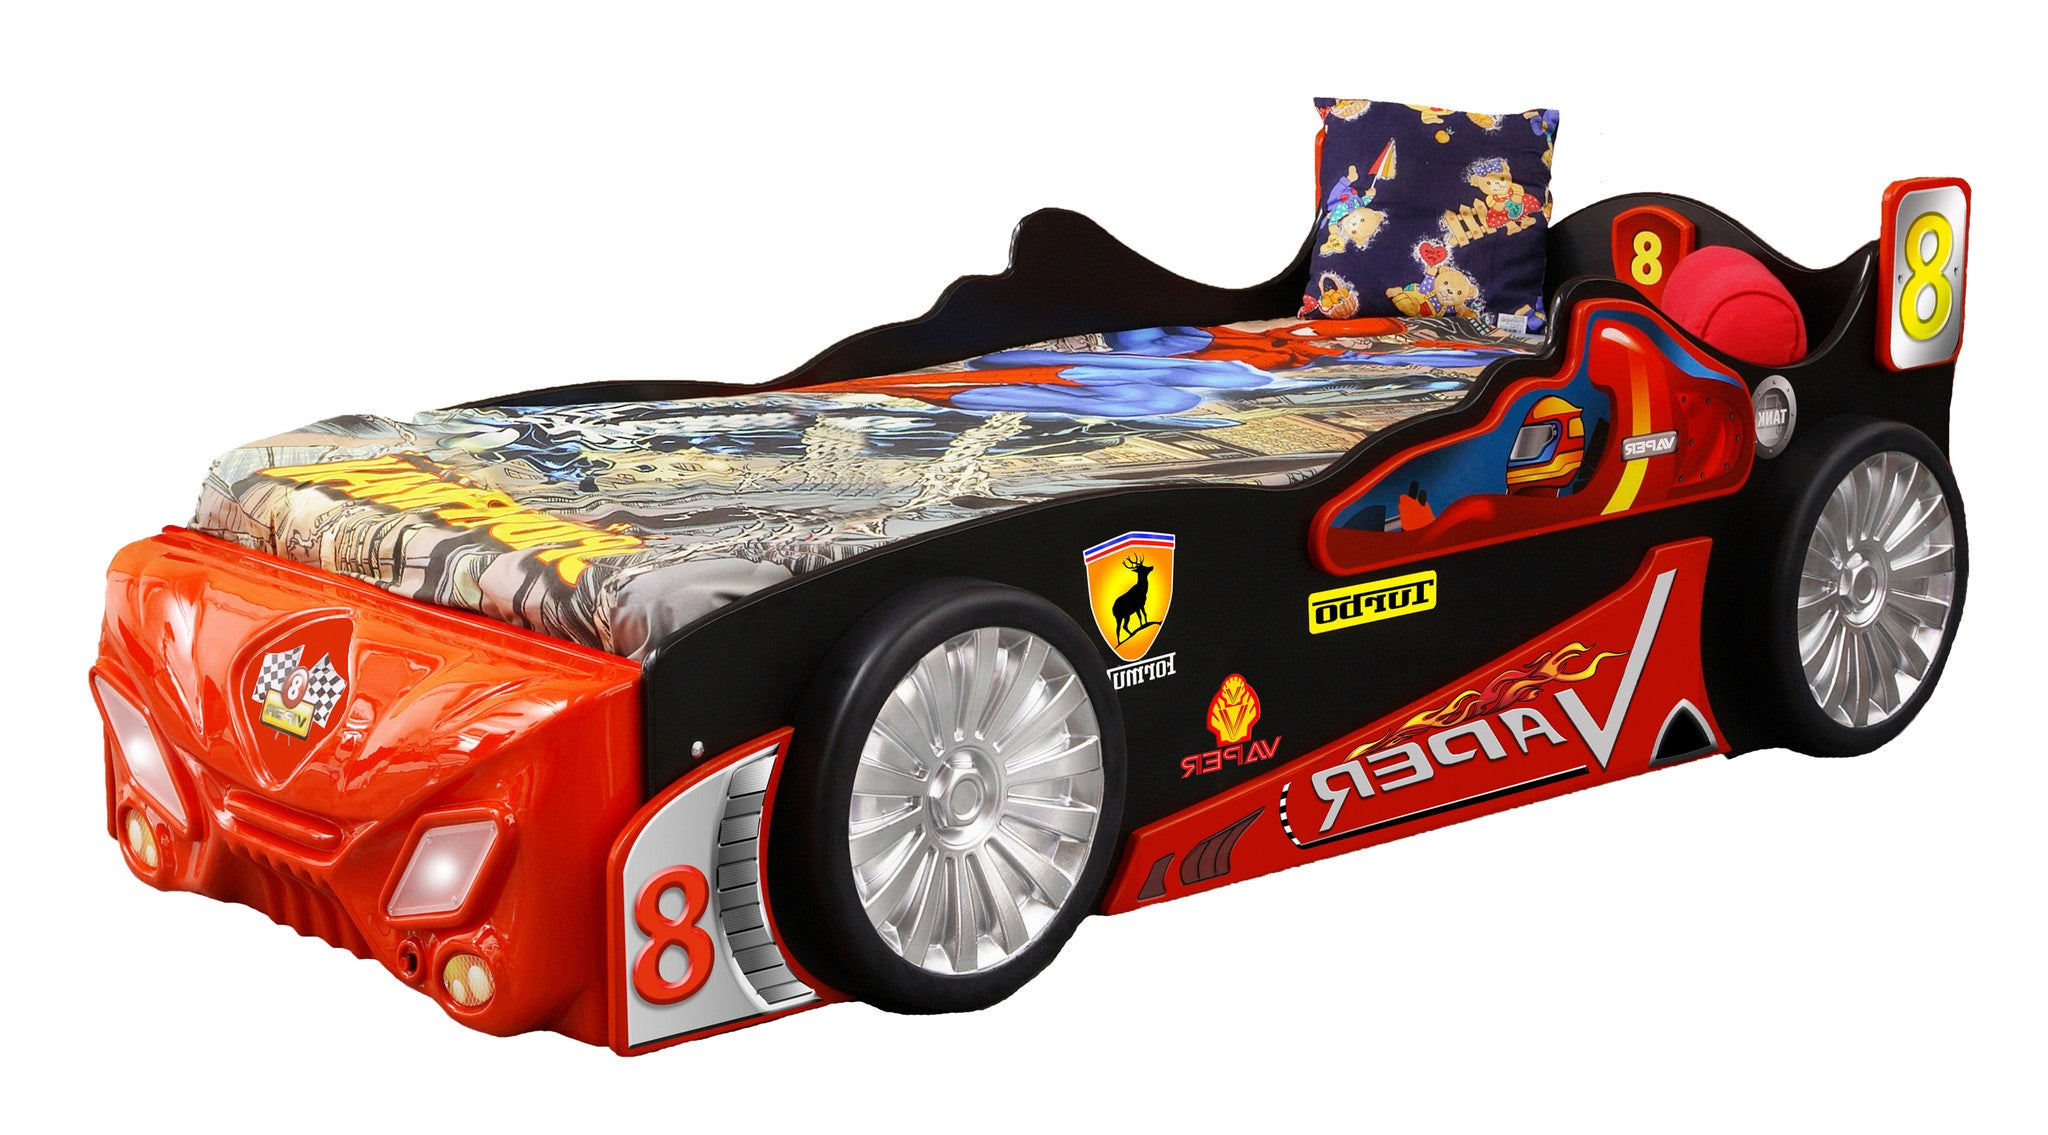 Vaper Car Bed For Kids - Buy Online on My Tiny Wheels